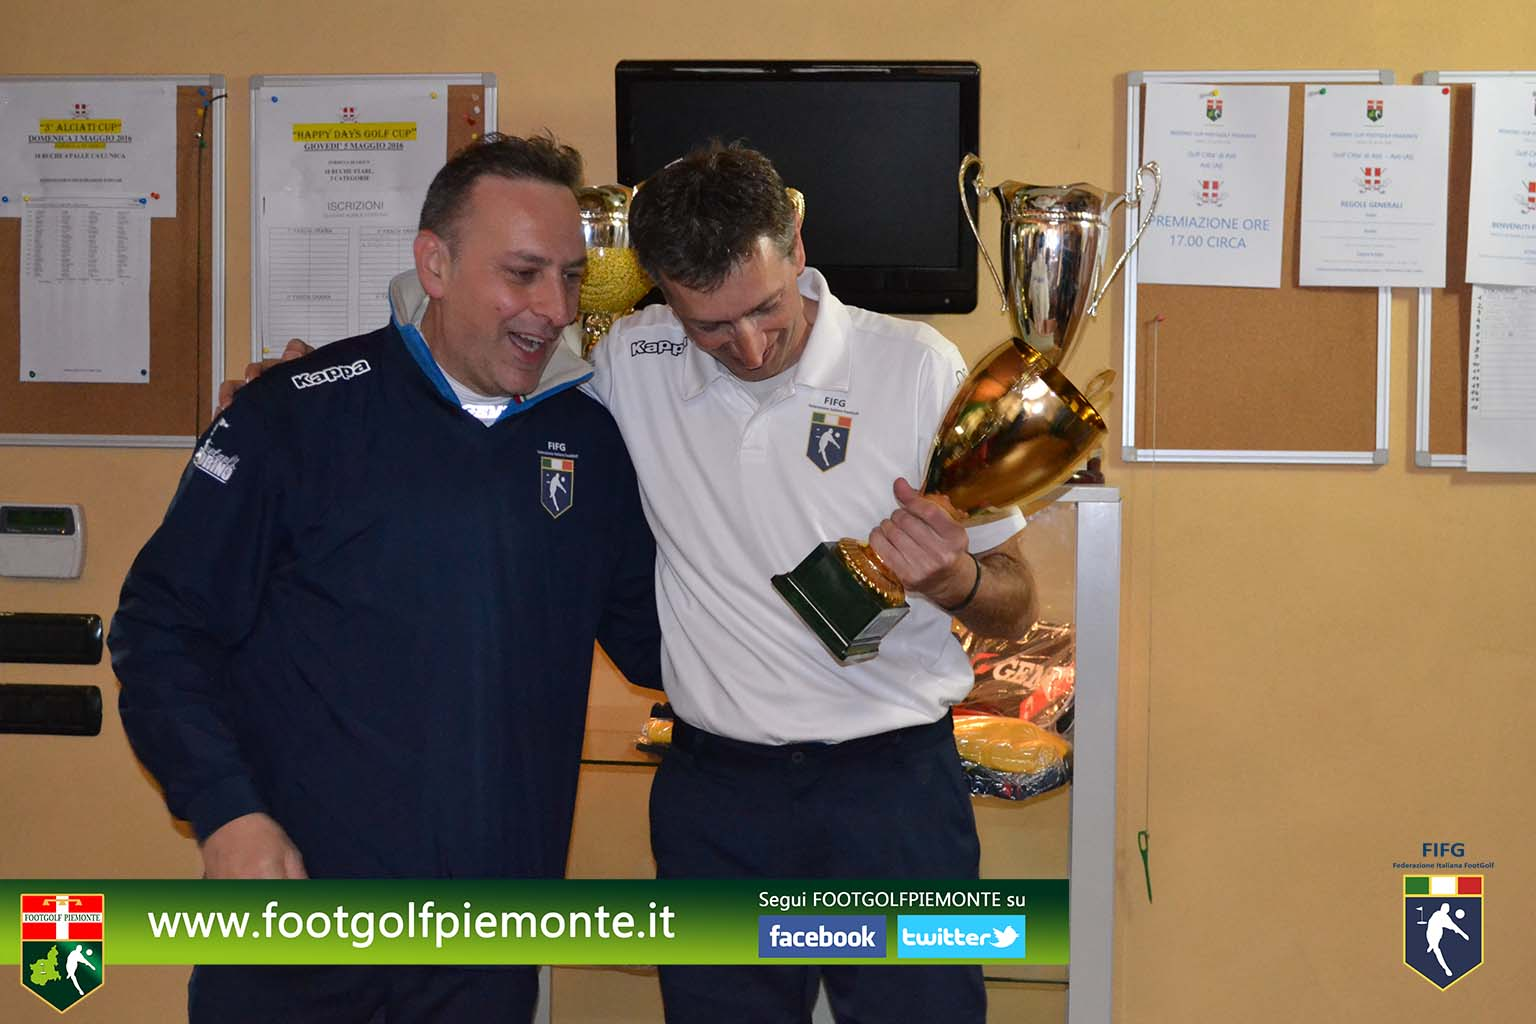 FOTO 9 Regions' Cup Footgolf Piemonte 2016 Golf Città di Asti (At) 30apr16-118